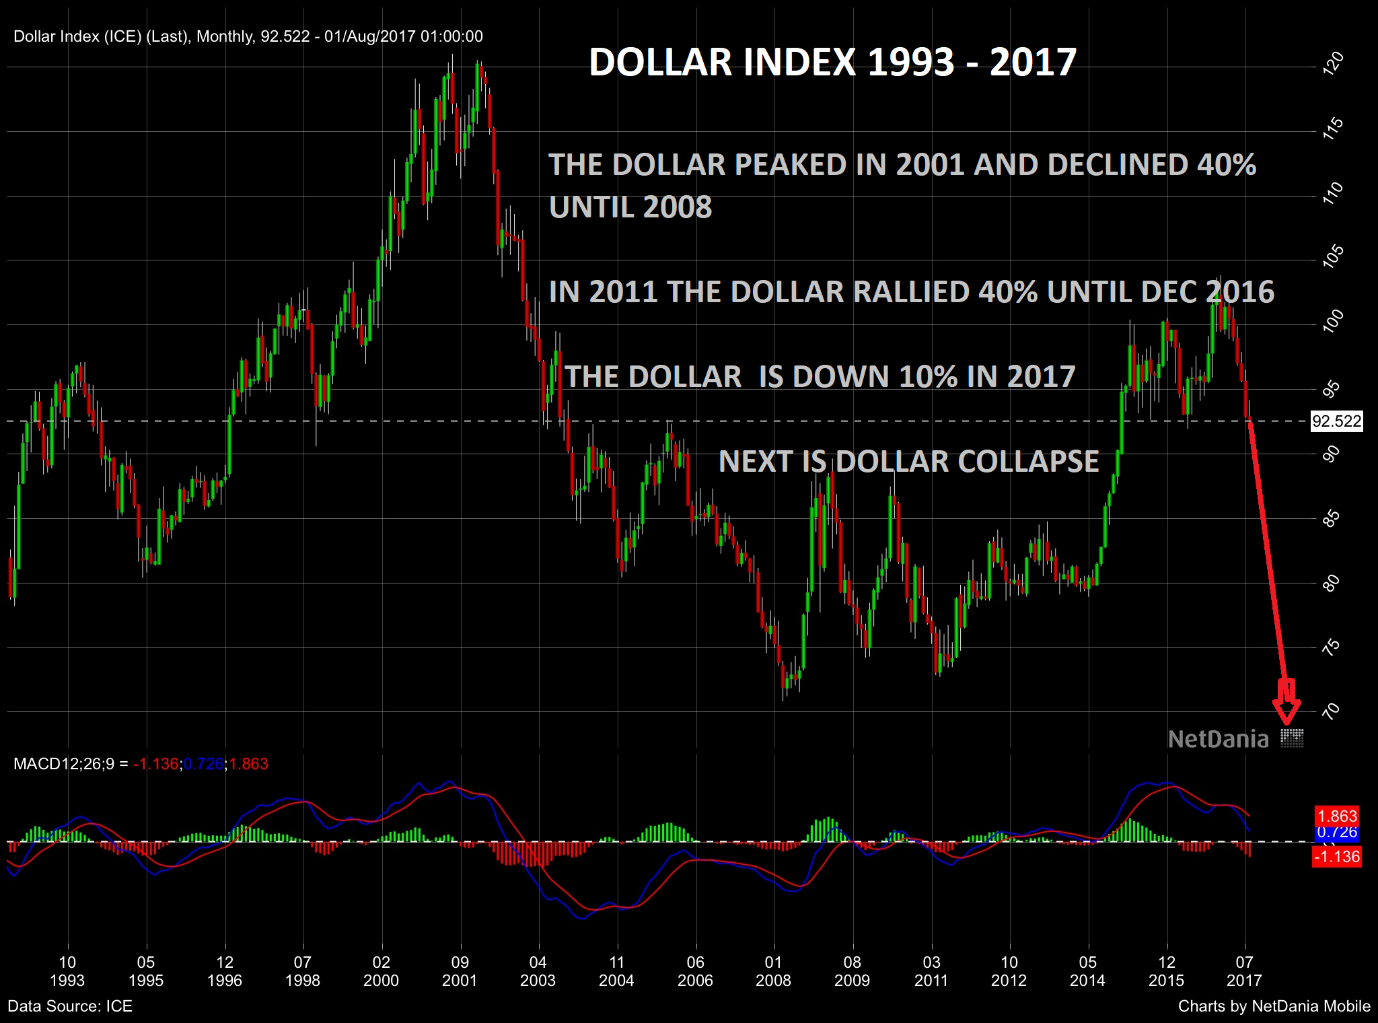 Dollars index 1993 - 2017